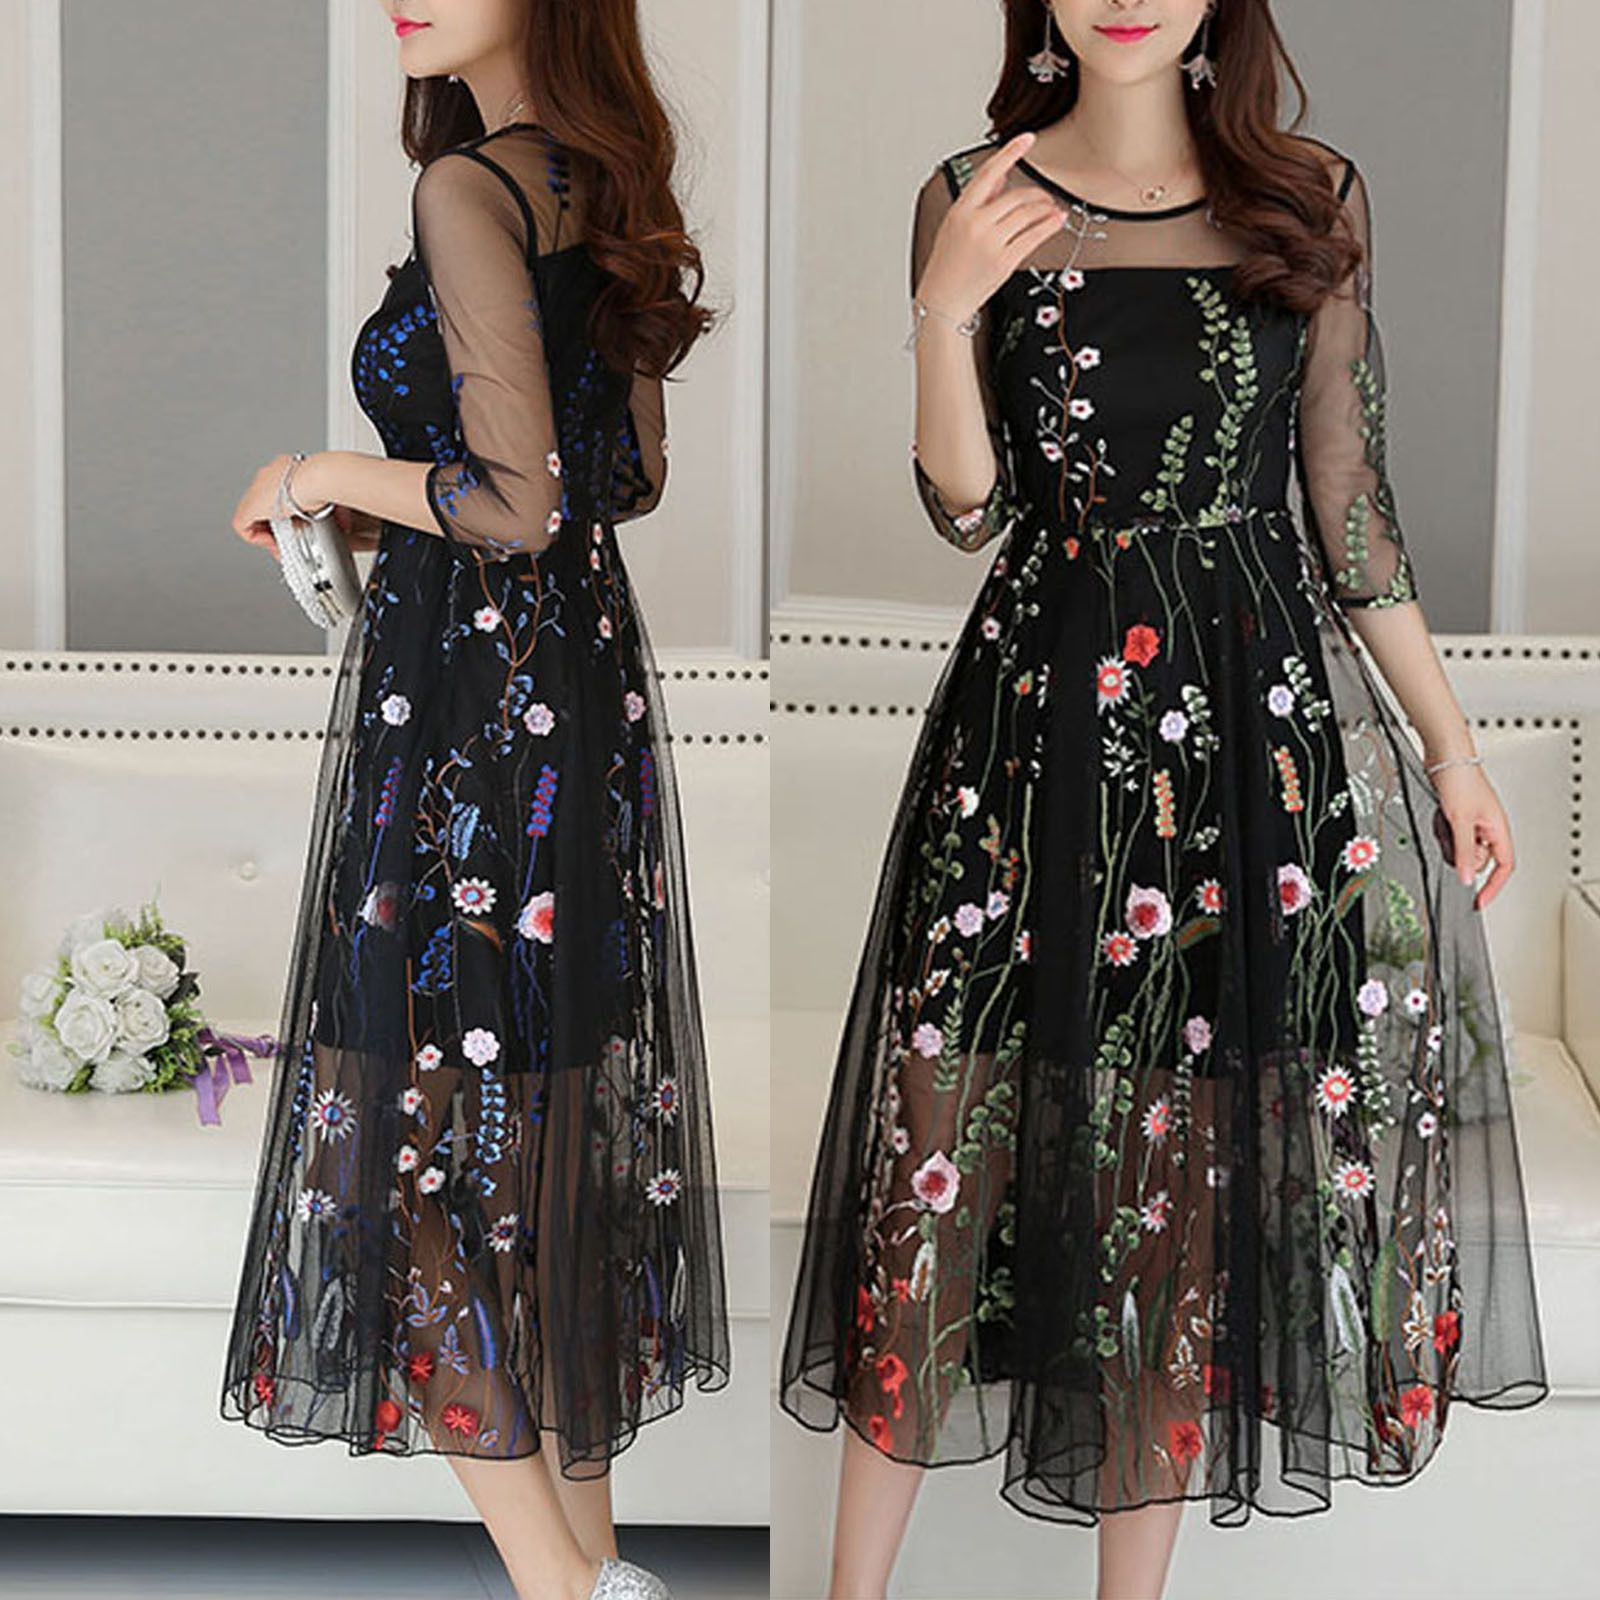 Long floral dress for wedding   Women Mesh Embroidery Floral Evening Party Wedding Cocktail